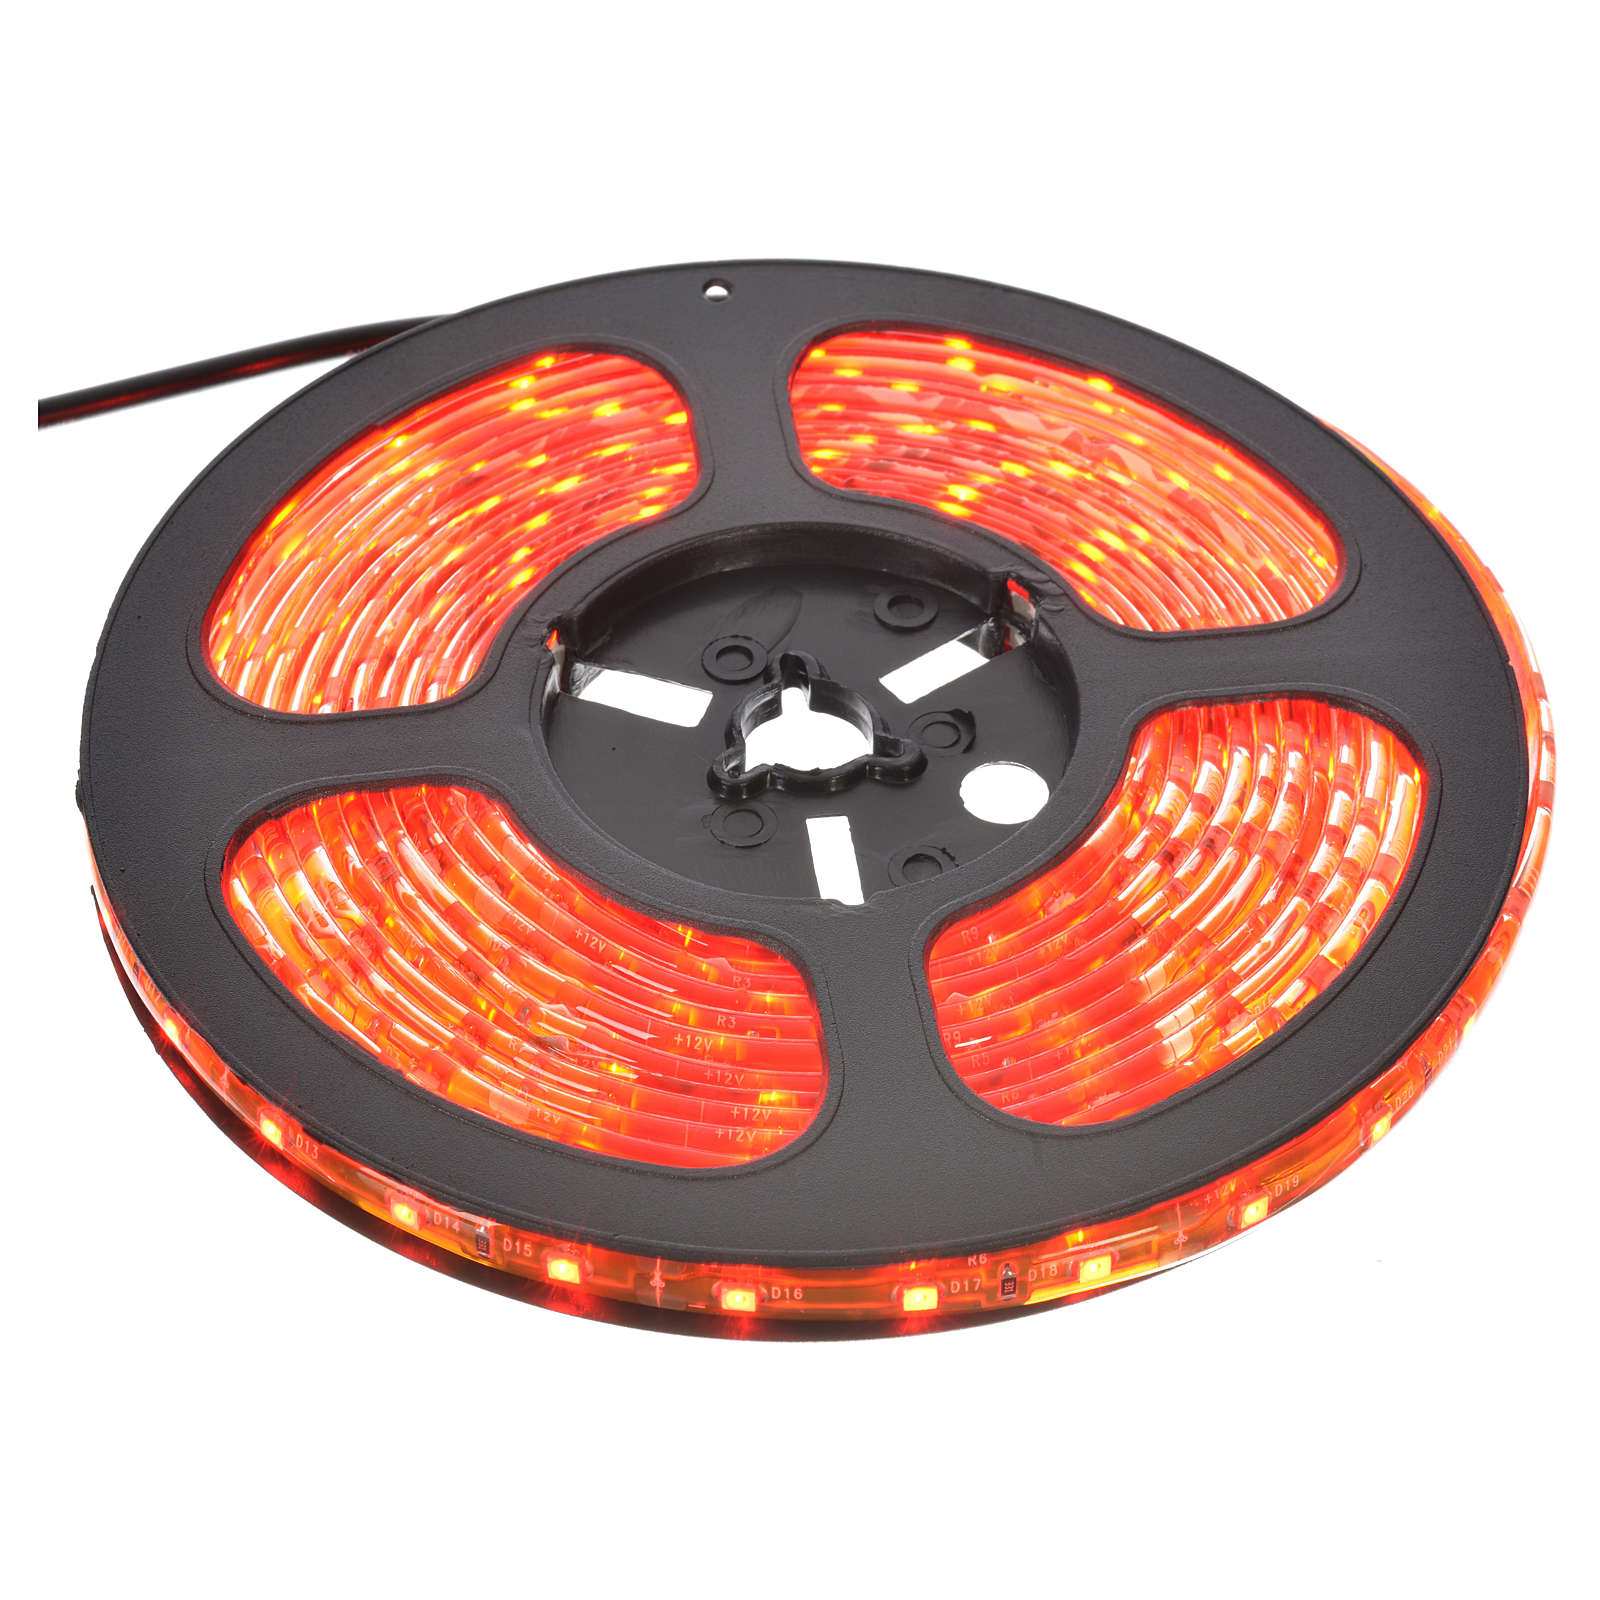 Christmas lights 5m strip with 300 LED for indoor use with adhesive, red 3